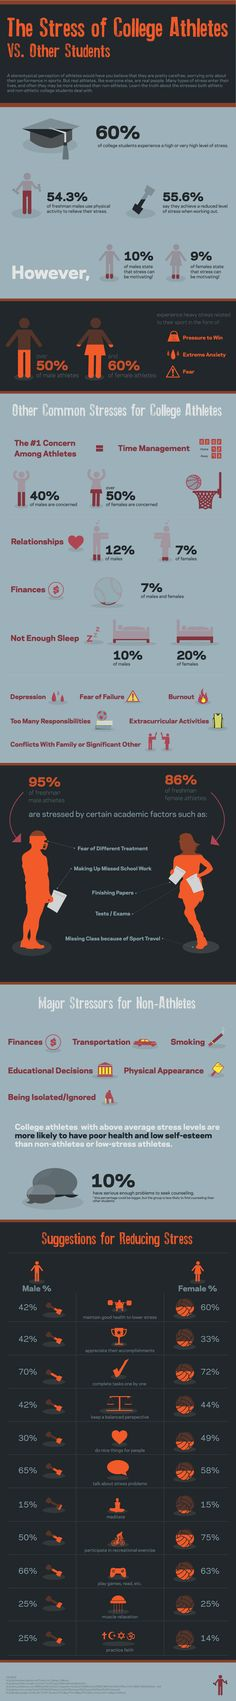 The Stress of College Athletes vs. Other Students is an infographic that highlights the special challenges college student-athletes face.